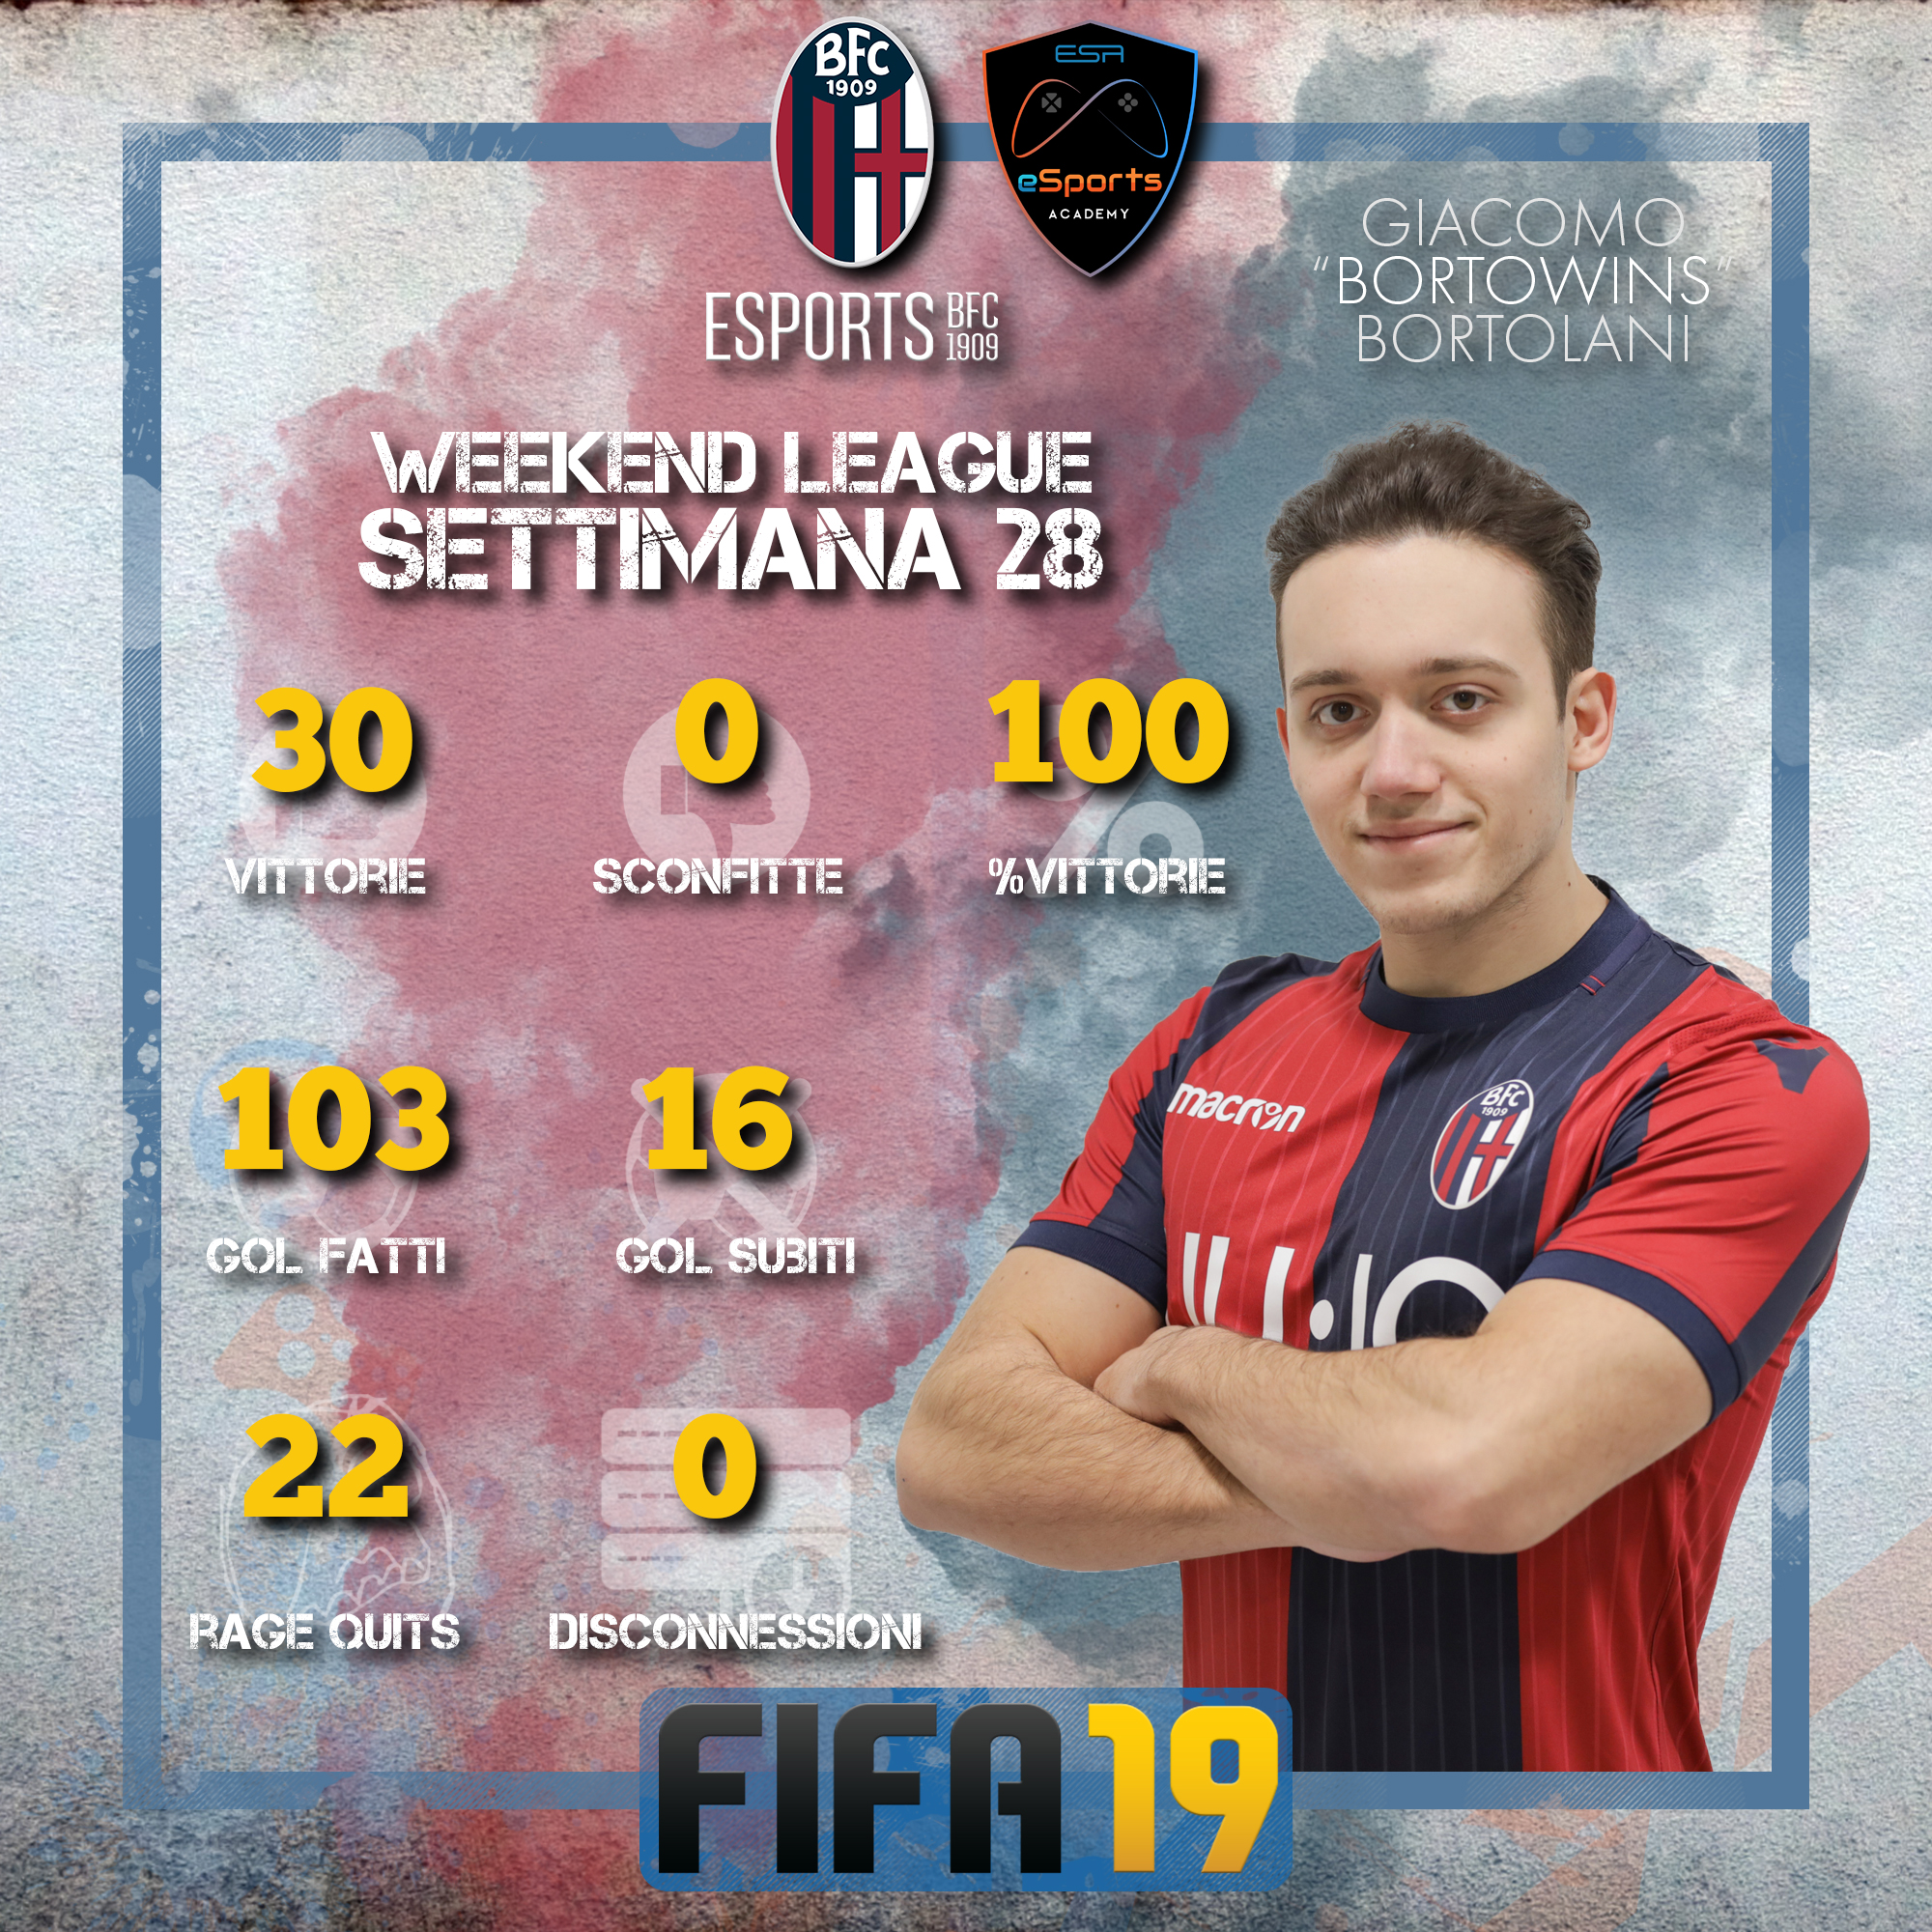 Fifa19_Weekend League_Week28_Bortowins.jpg